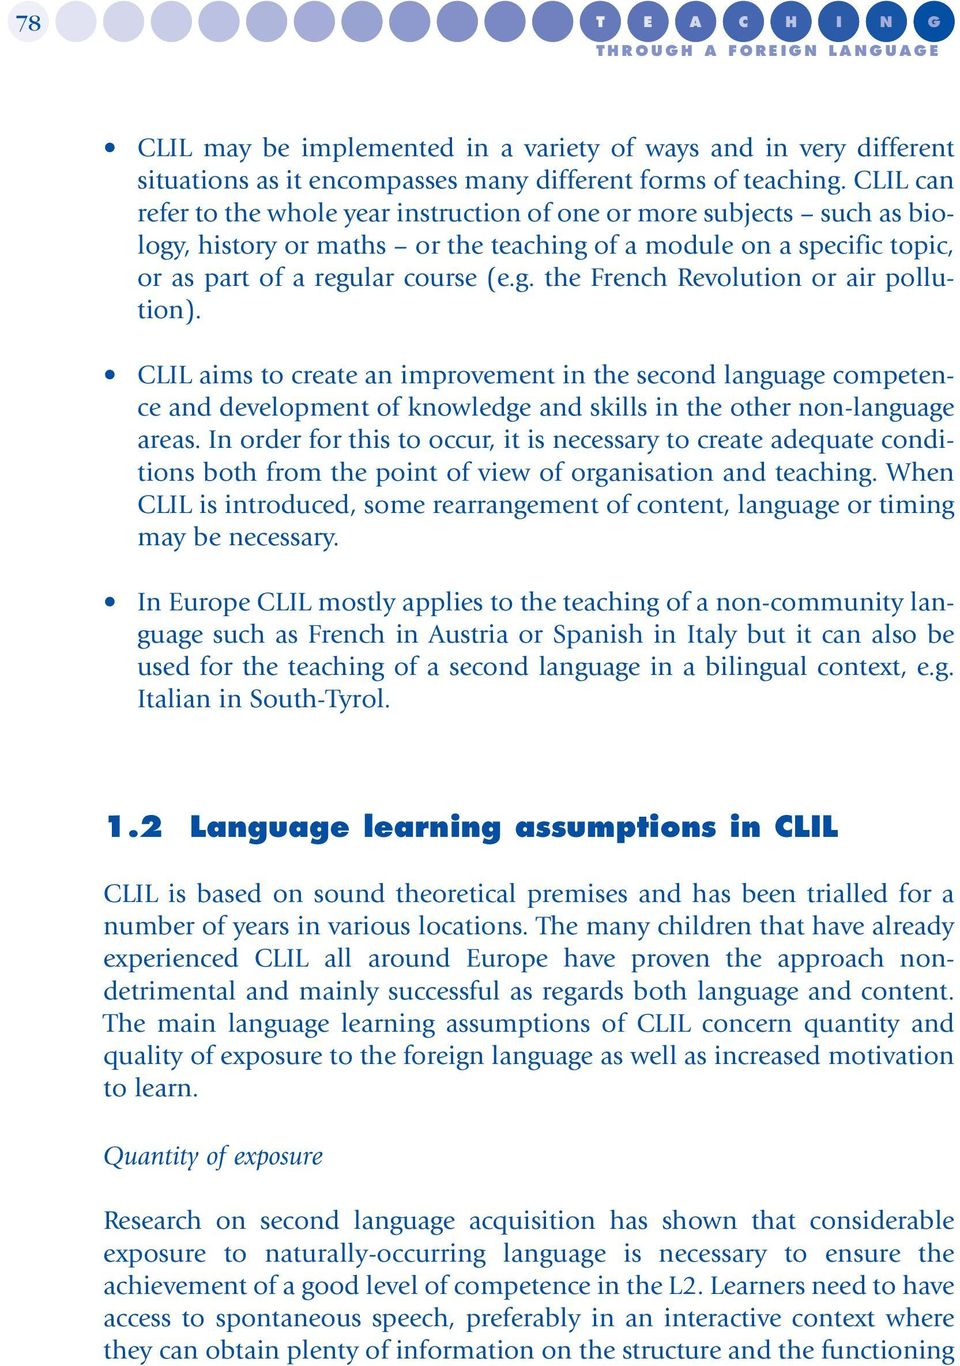 CLIL aims to create an improvement in the second language competence and development of knowledge and skills in the other non-language areas.